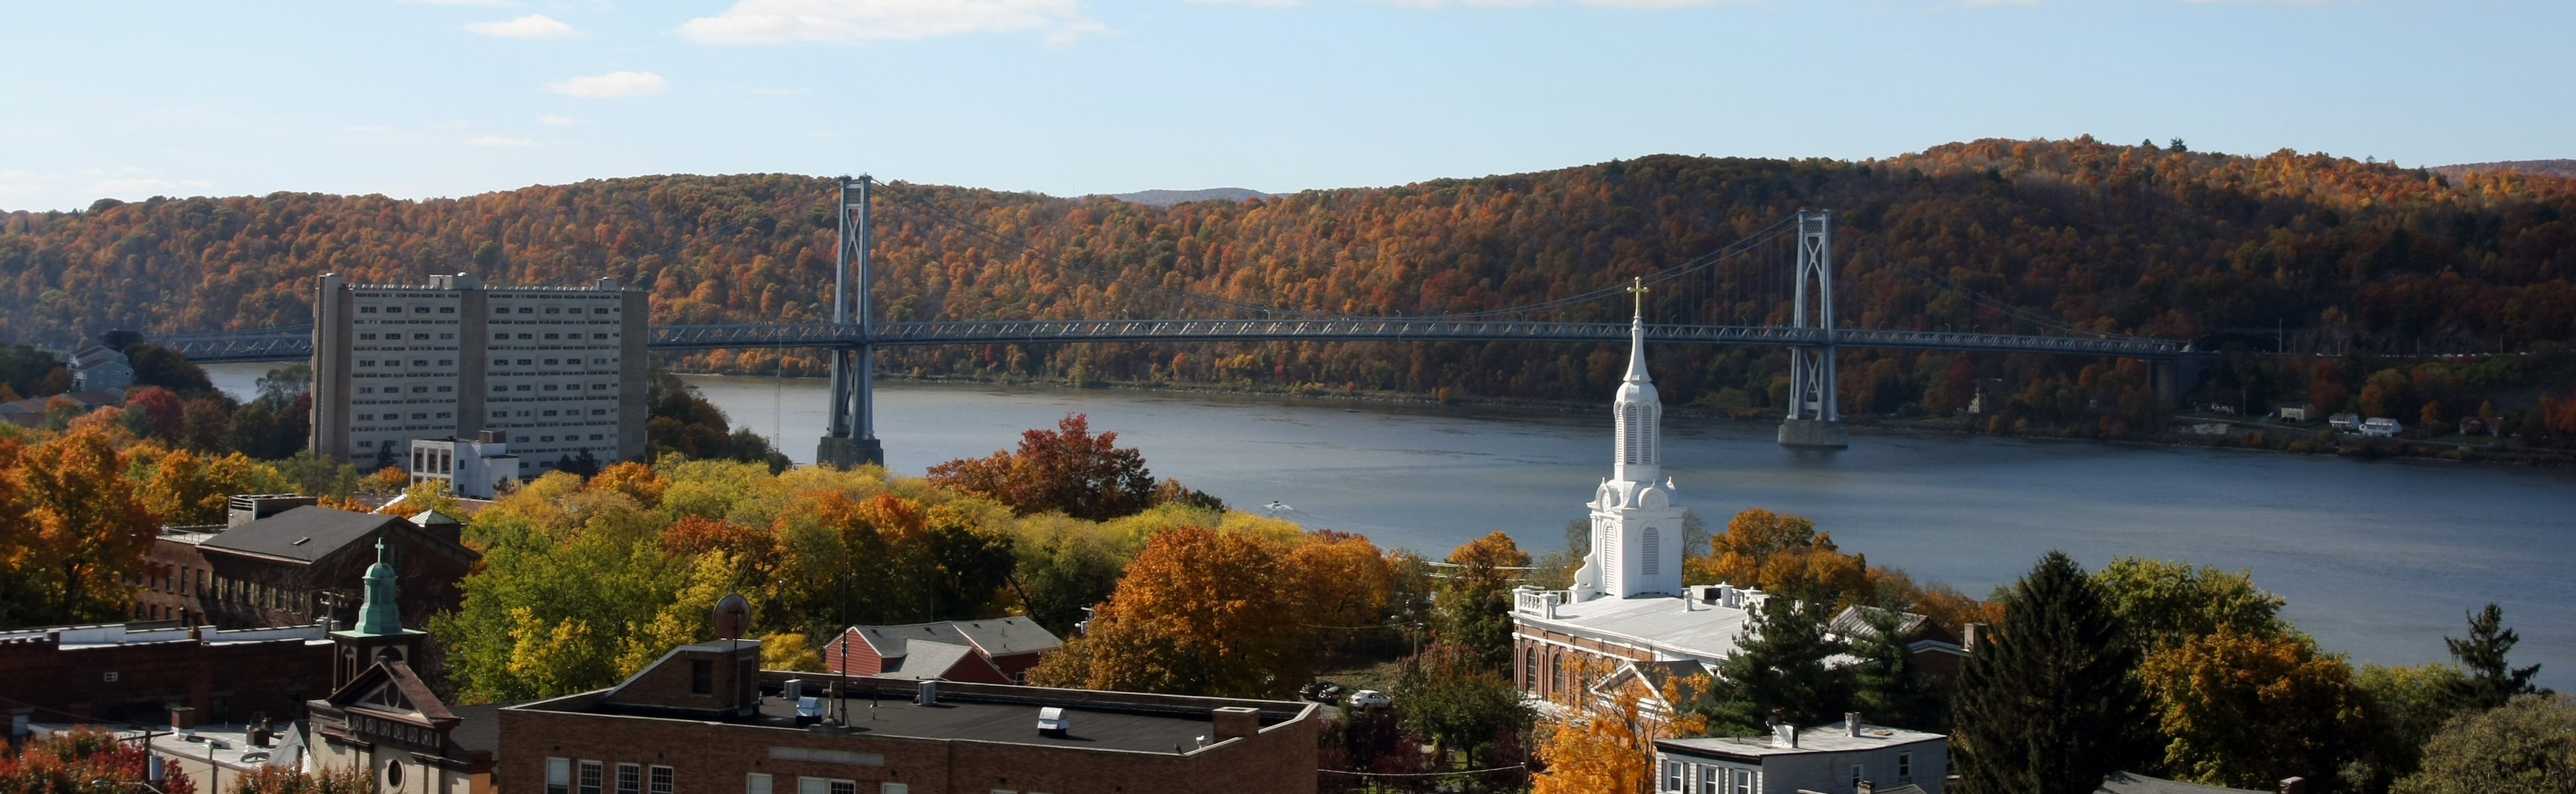 A Fall view of Poughkeepsie with the Mid Hudson Bridge in the background.